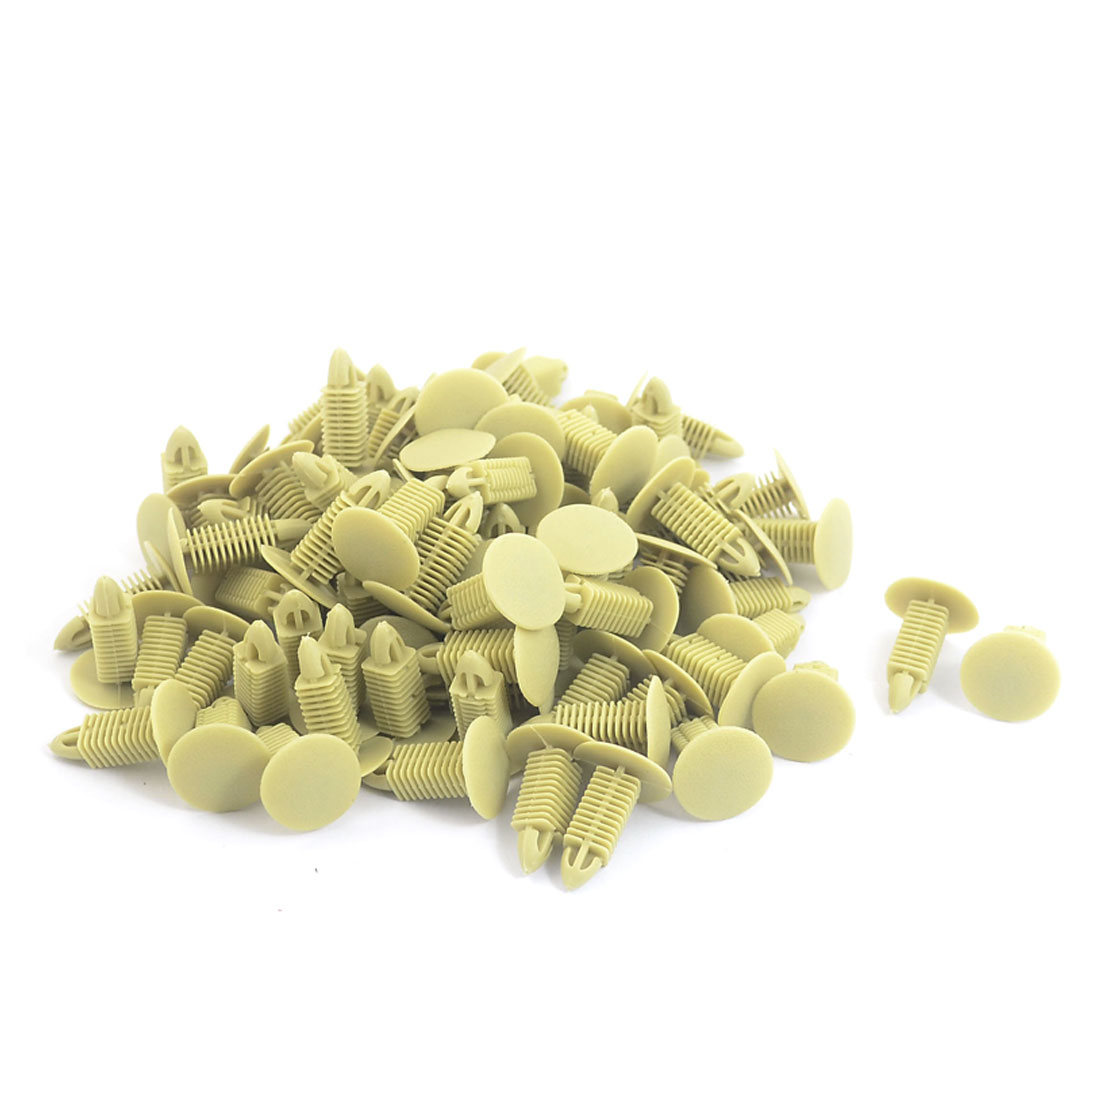 Plastic Buckle Ceiling Trim Rivets Fastener Clips Khaki 100PCS